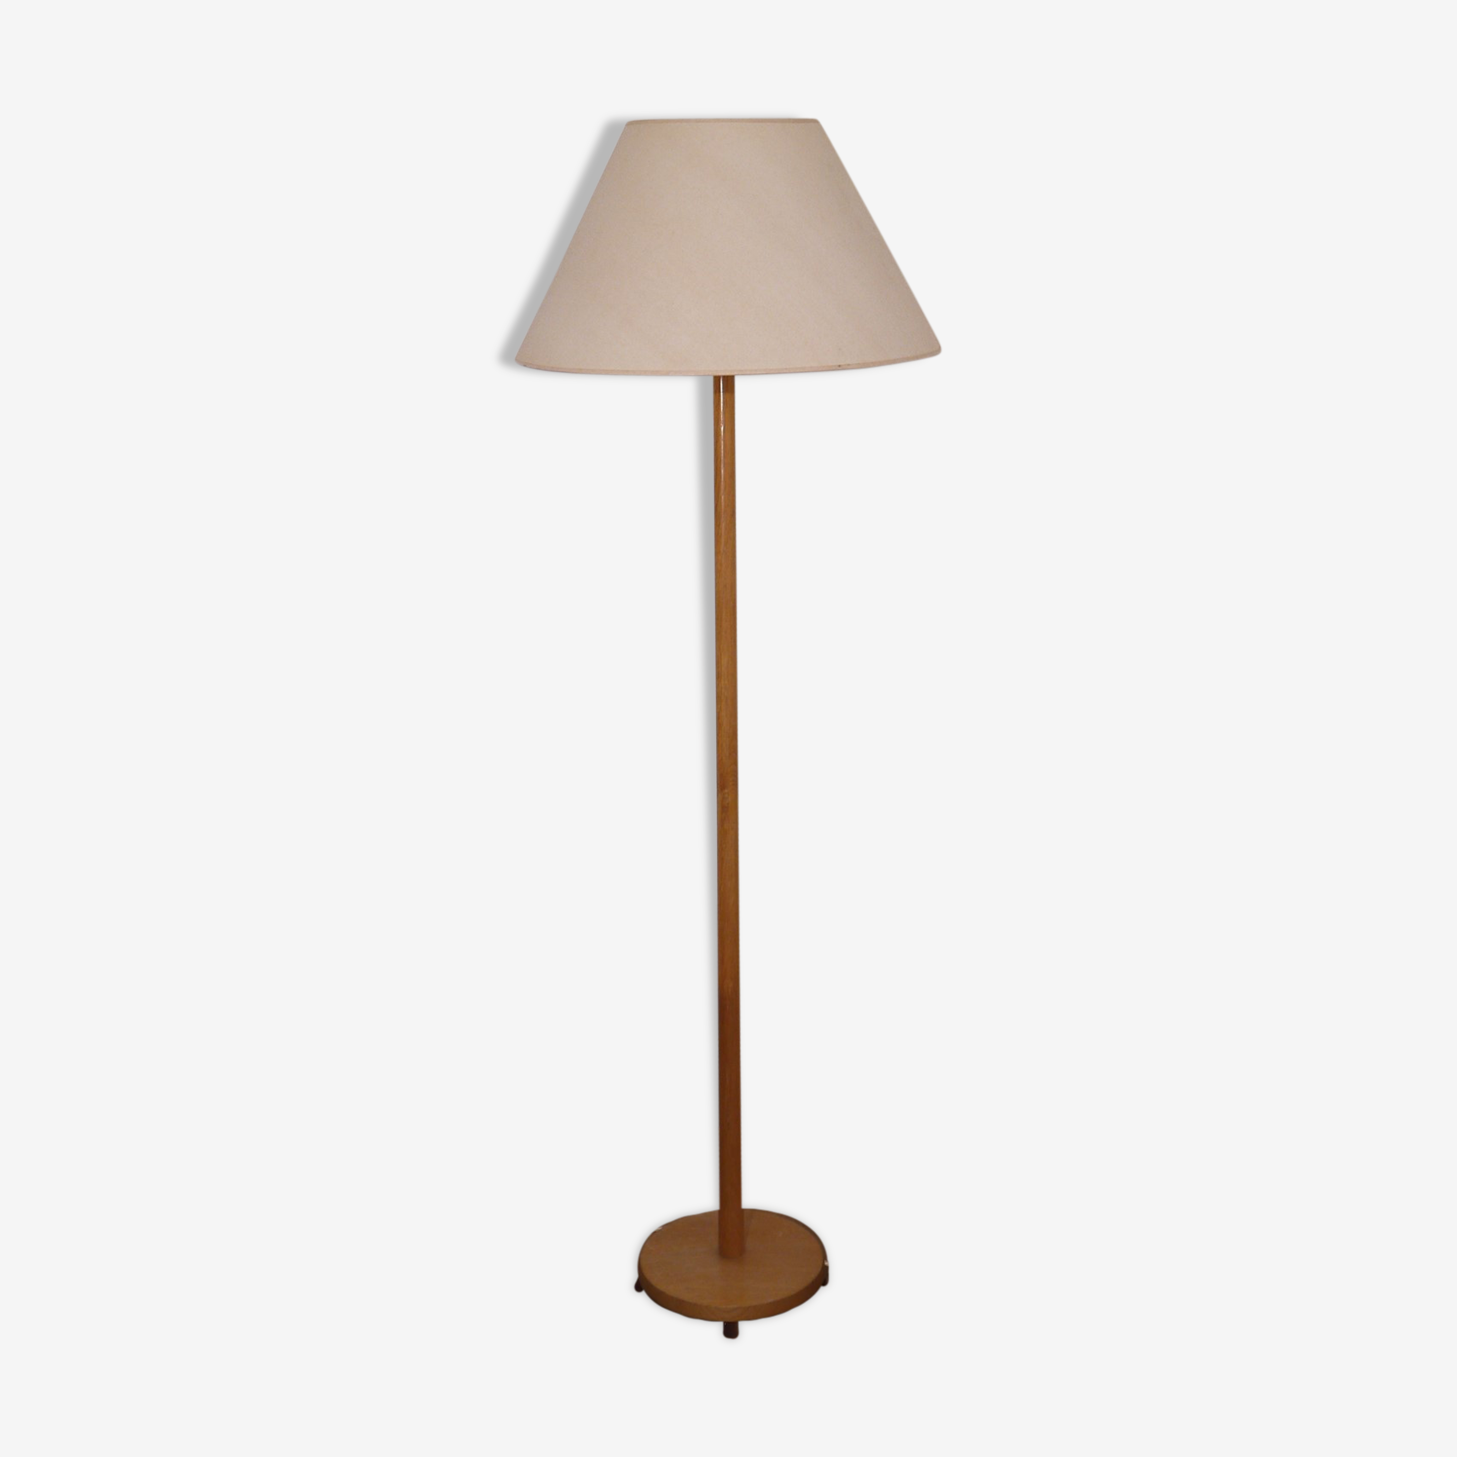 Scandinavian floor lamp 1960